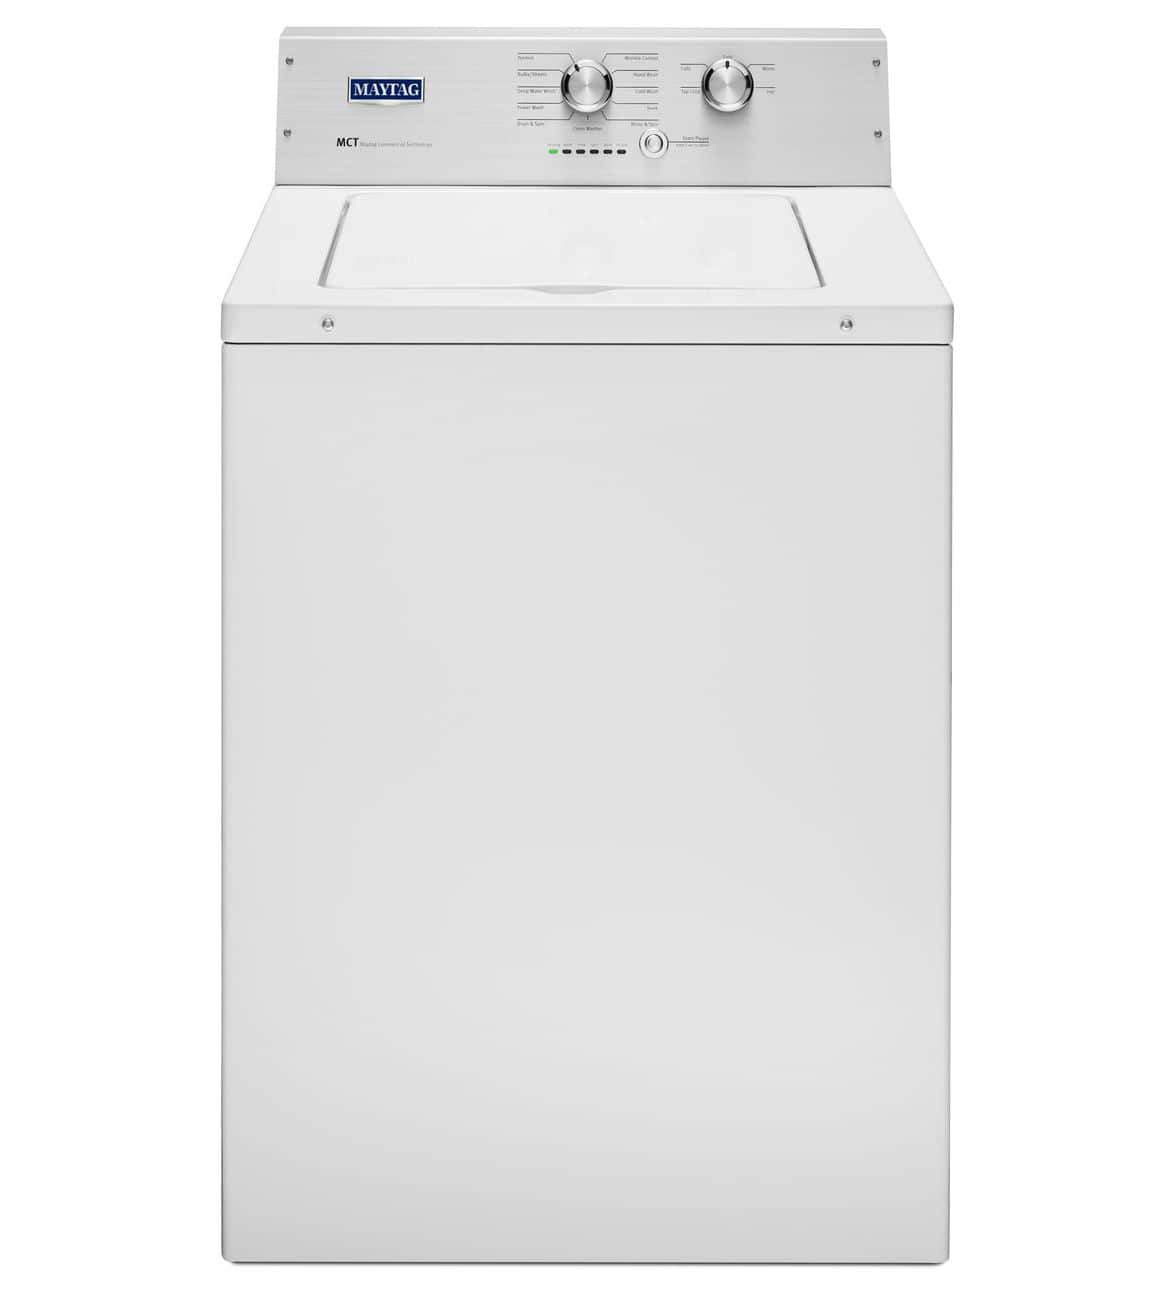 Maytag Large Capacity Washer- $401 / Maytag Large Capacity Dryer- $401 + FS with orders $499+